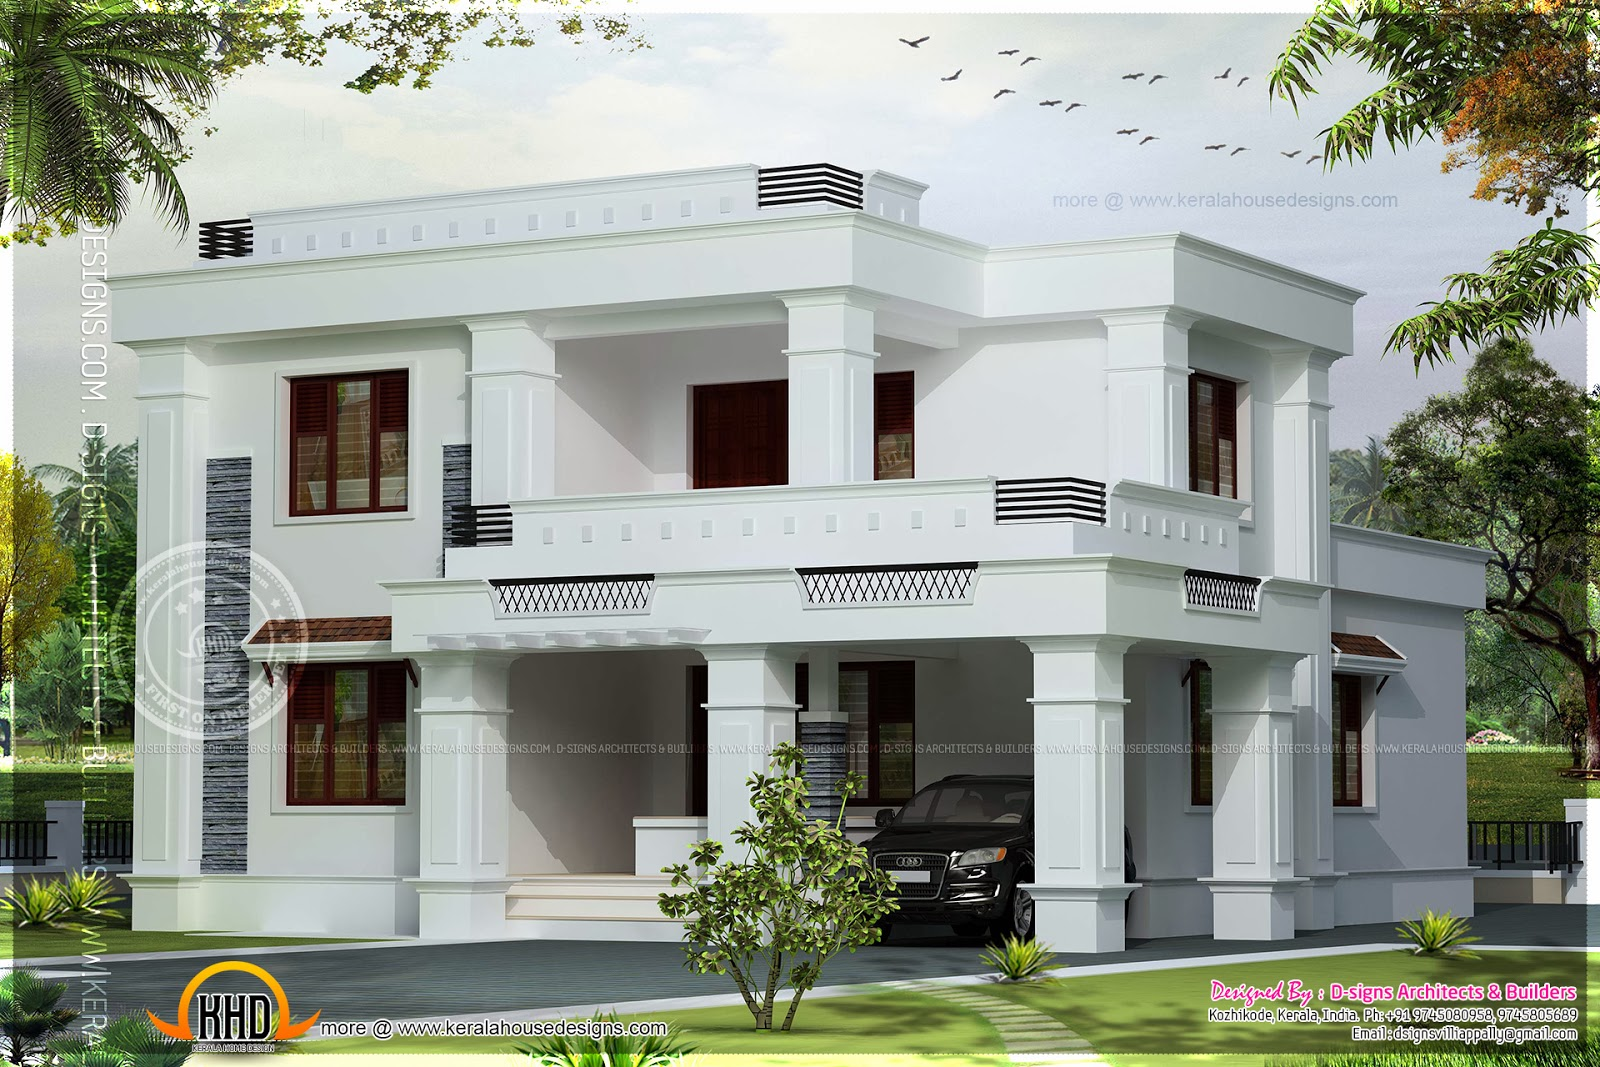 Today 2020 09 14 Simple Roof Modern House Plans Best Ideas For Us